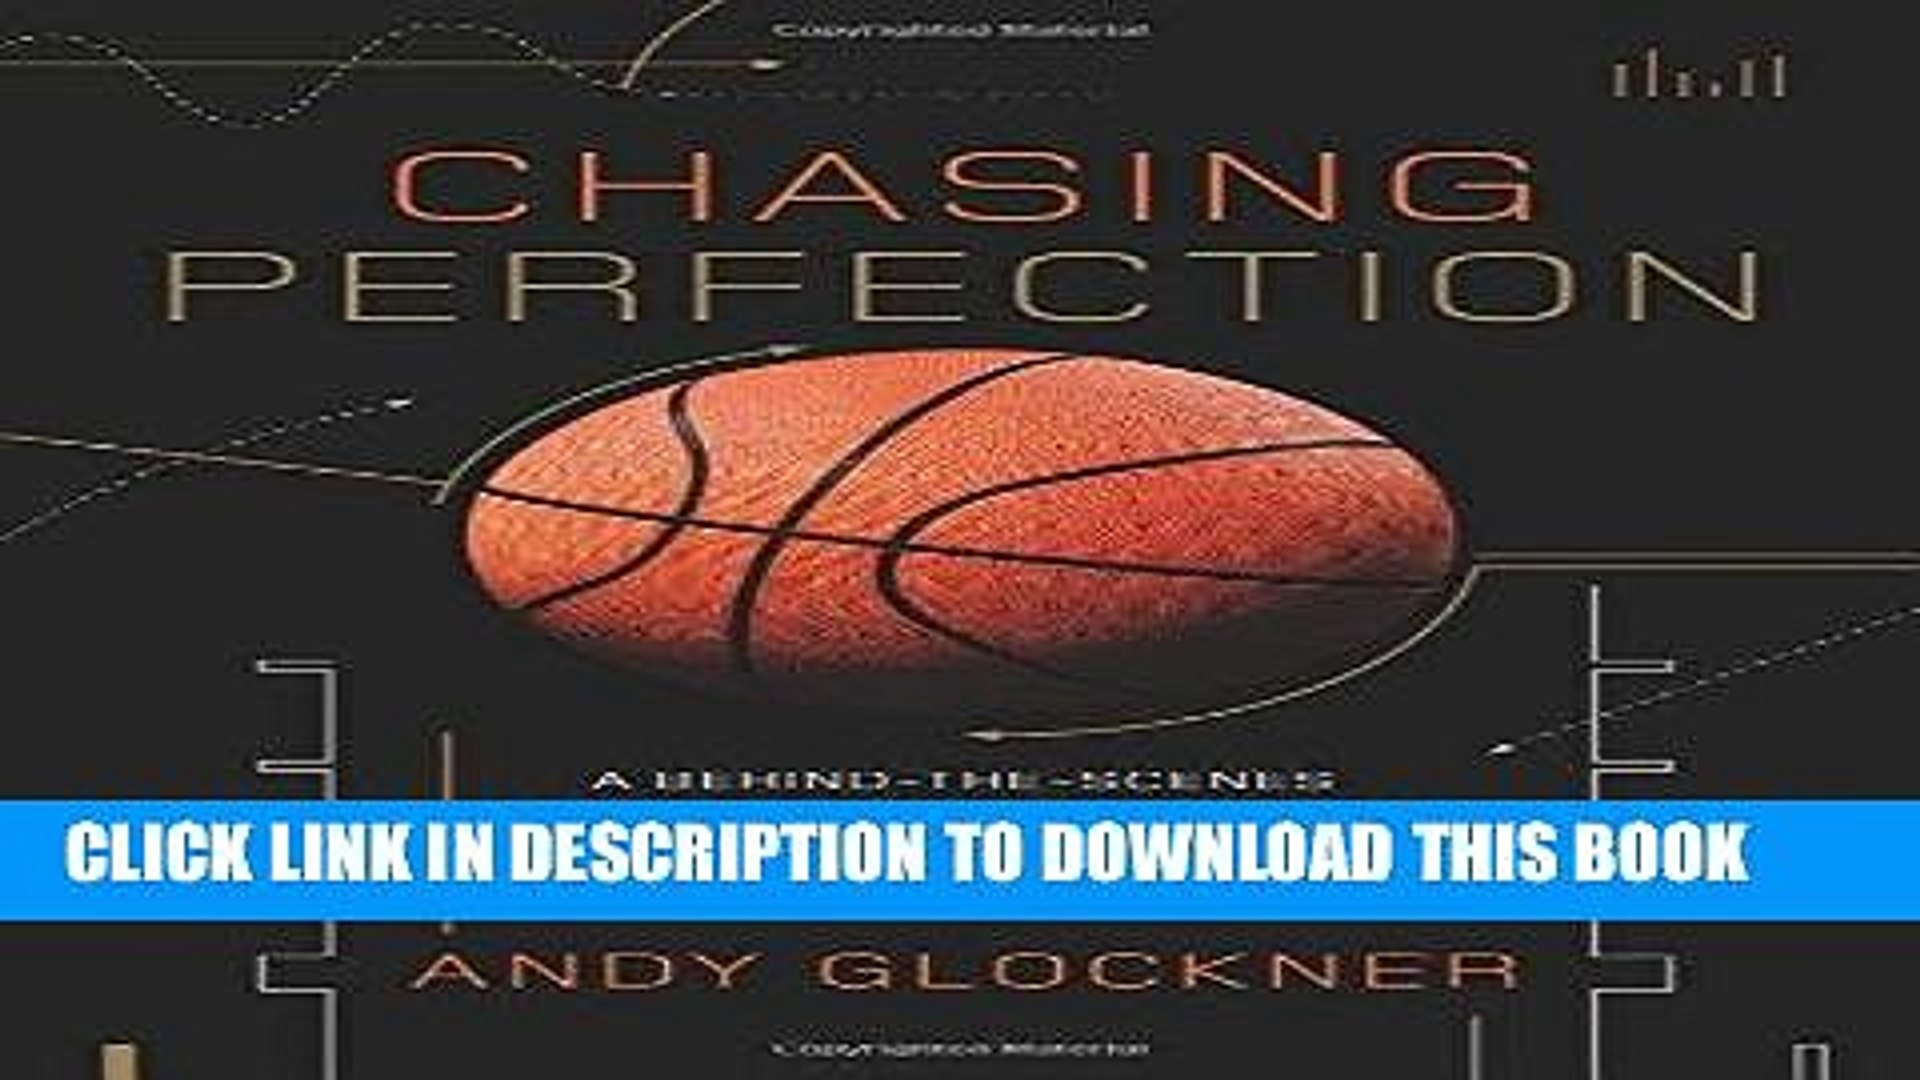 [FREE] EBOOK Chasing Perfection: A Behind-the-Scenes Look at the High-Stakes Game of Creating an